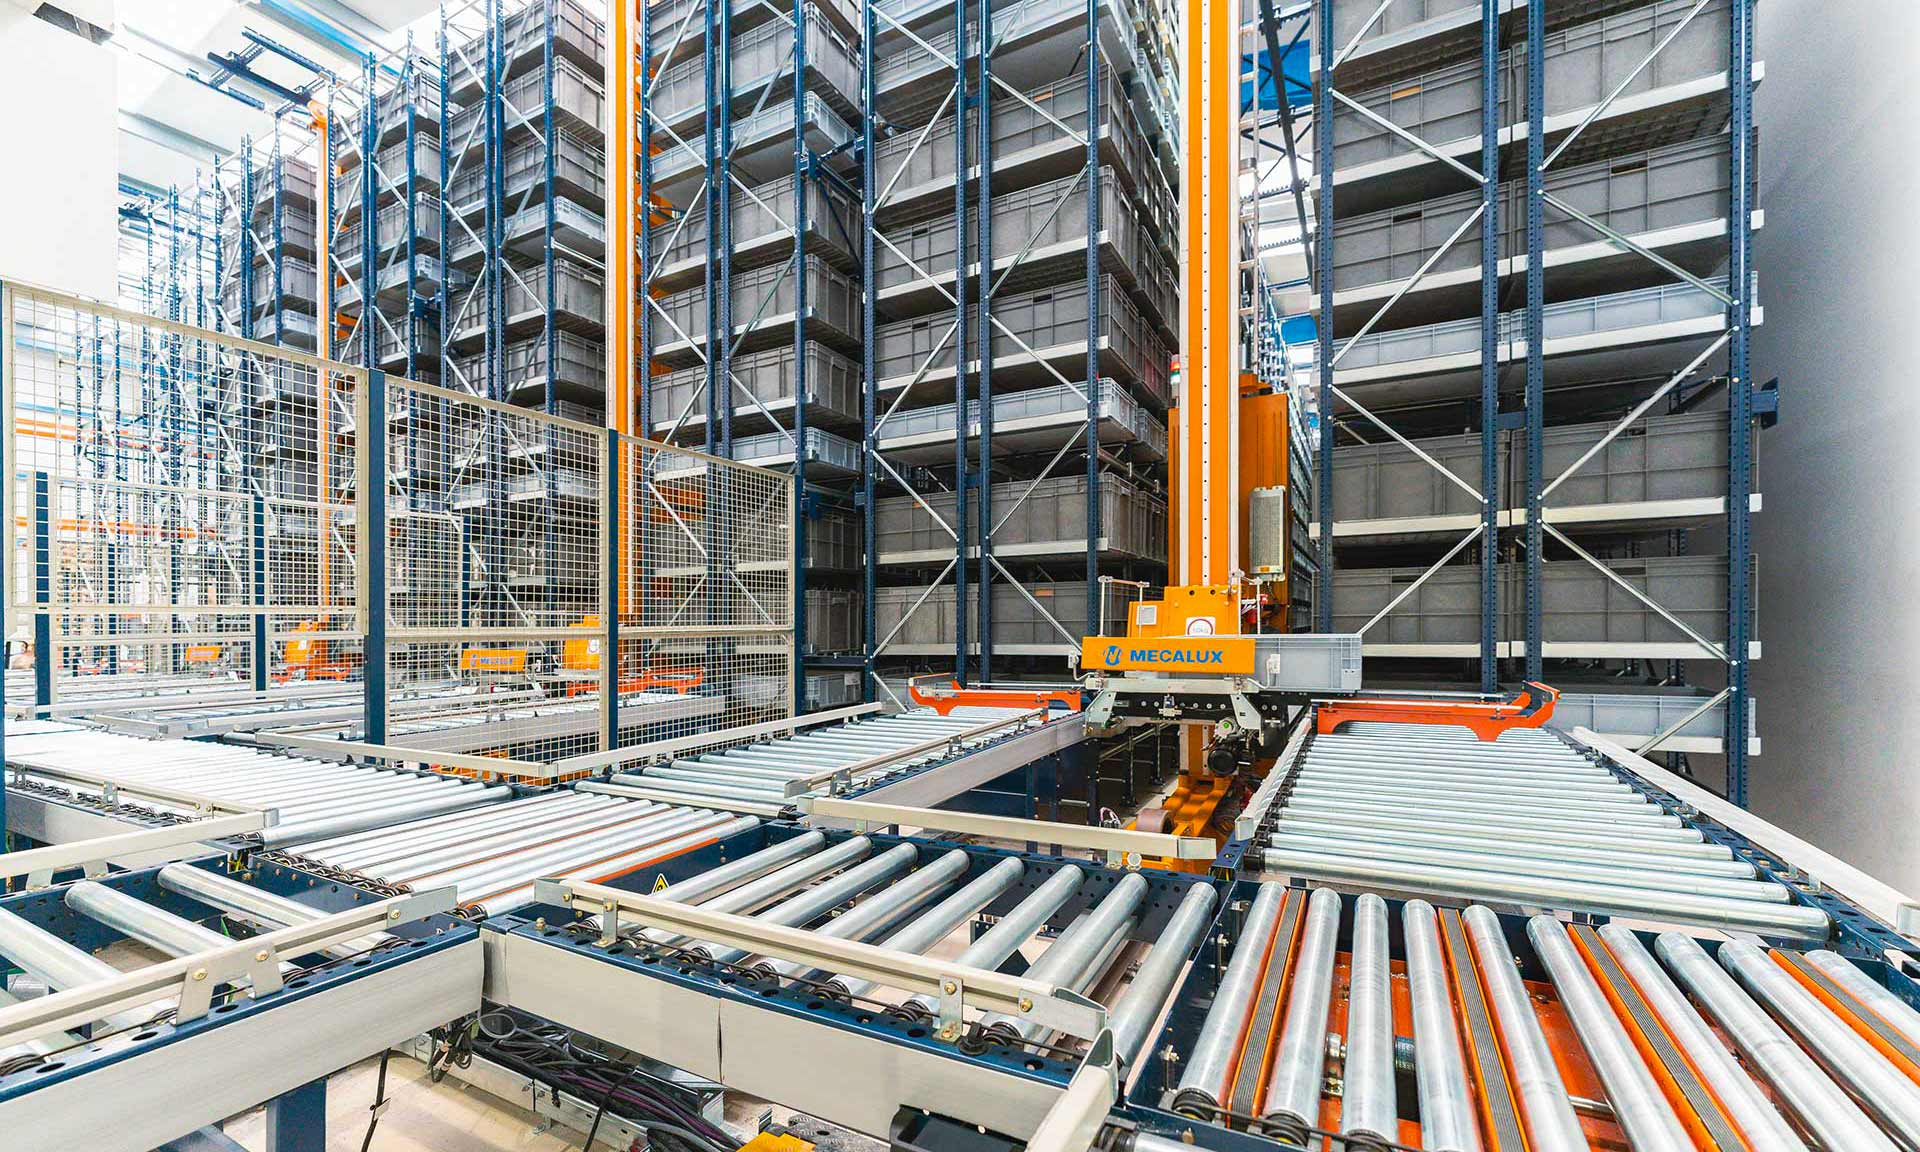 Normagrup: automation shines a light on logistics